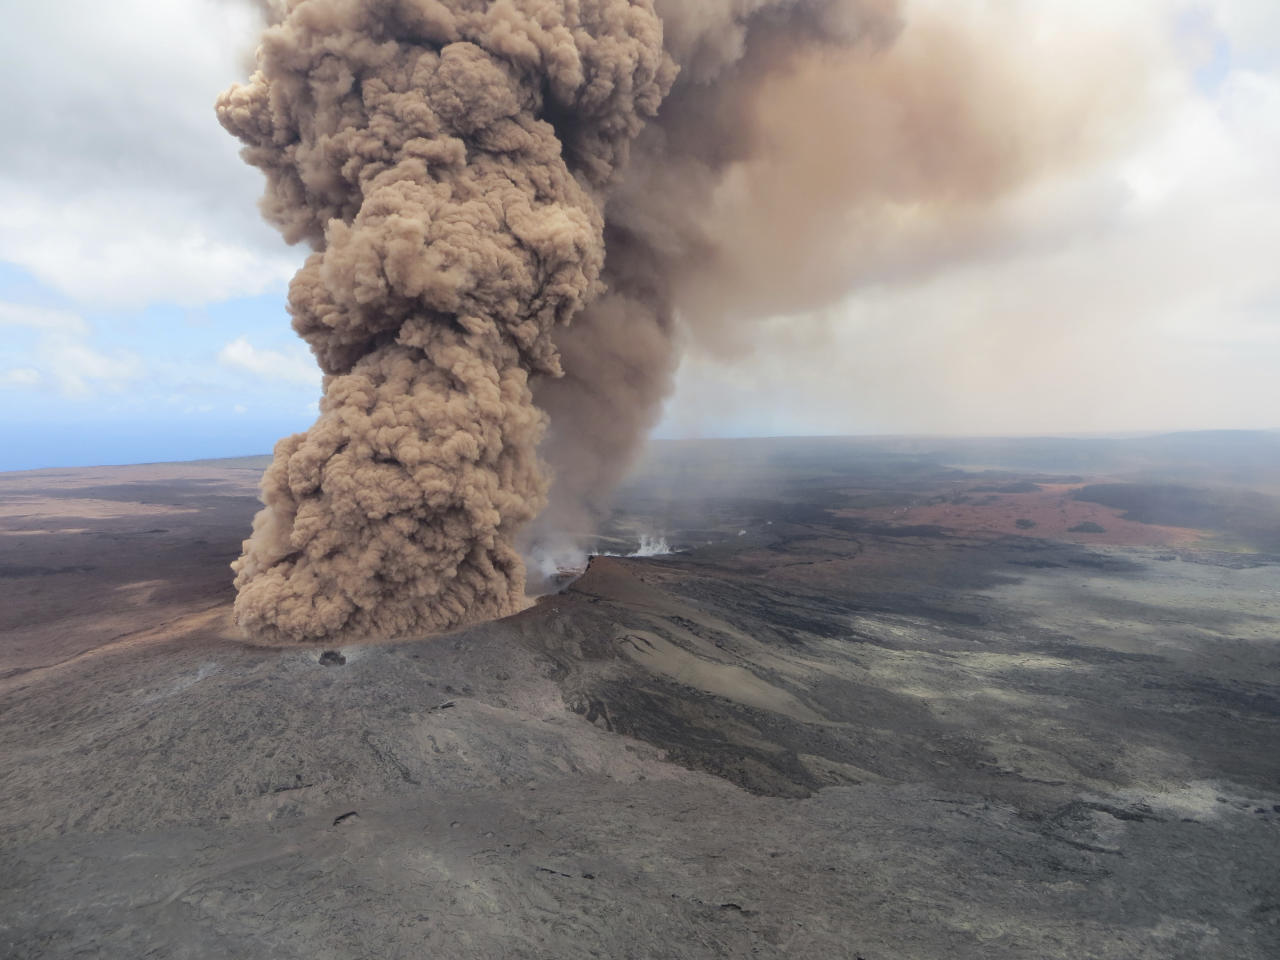 FILE - This May 4, 2018 file aerial image released by the U.S. Geological Survey shows a column of robust, reddish-brown ash plume that occurred after an earthquake shook the Big Island of Hawaii. White plumes of acid and extremely fine shards of glass billowed into the sky over Hawaii as molten rock from Kilauea volcano poured into the ocean, creating yet another hazard from an eruption that began more than two weeks ago; a toxic steam cloud. (U.S. Geological Survey via AP, file)